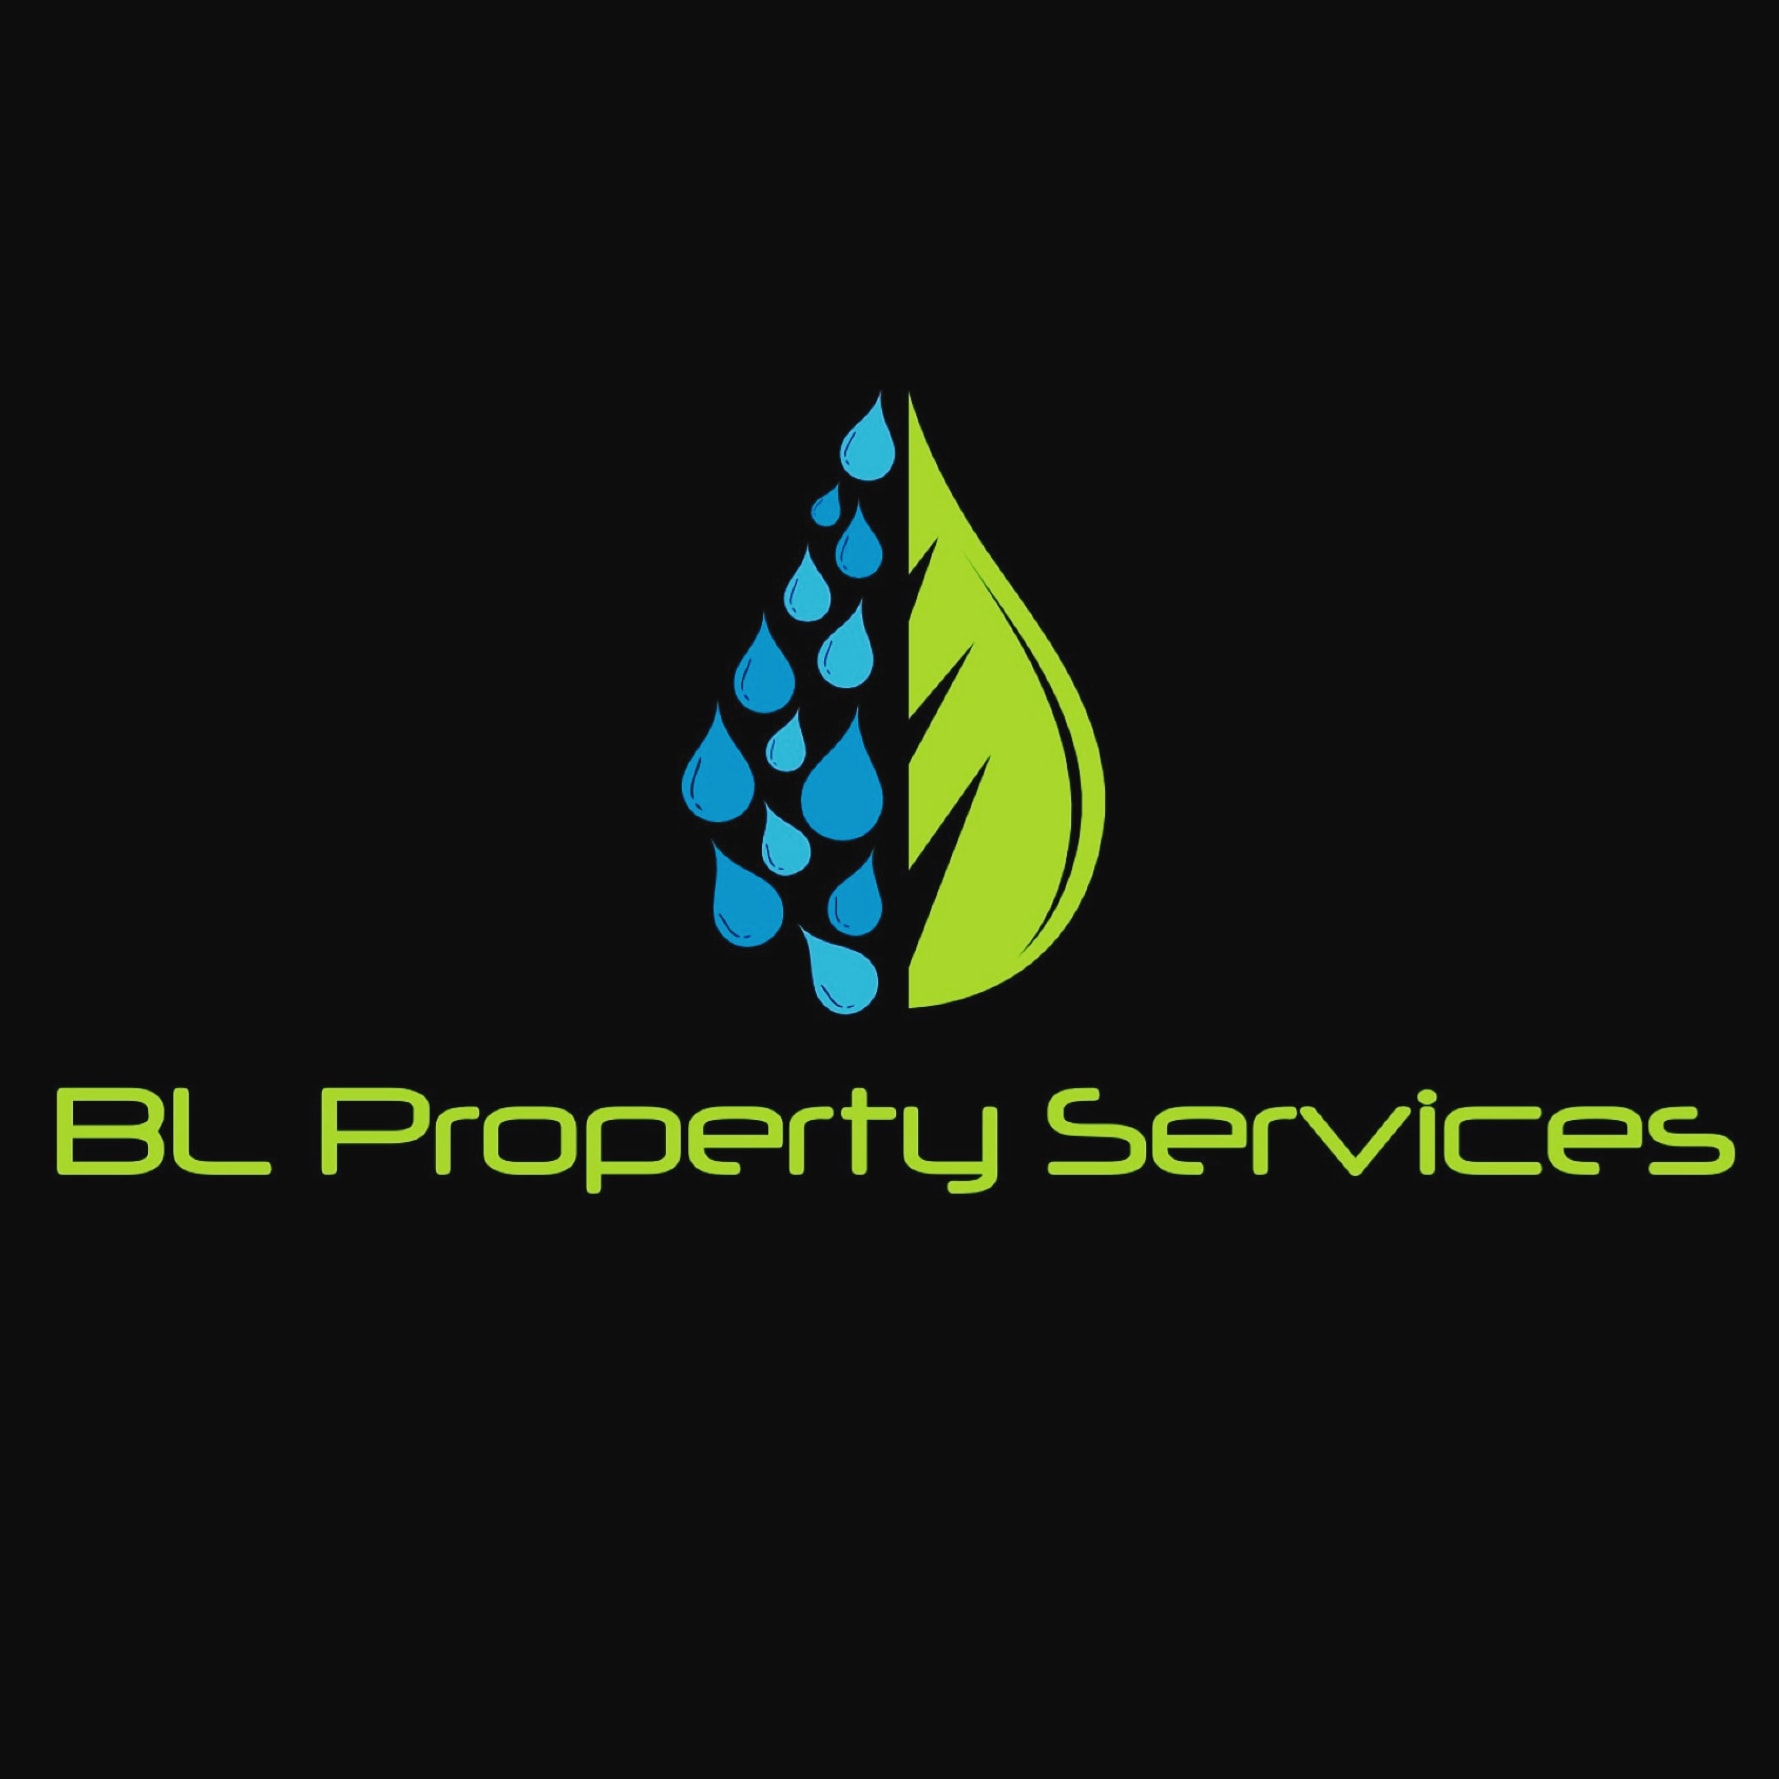 BL Property Services